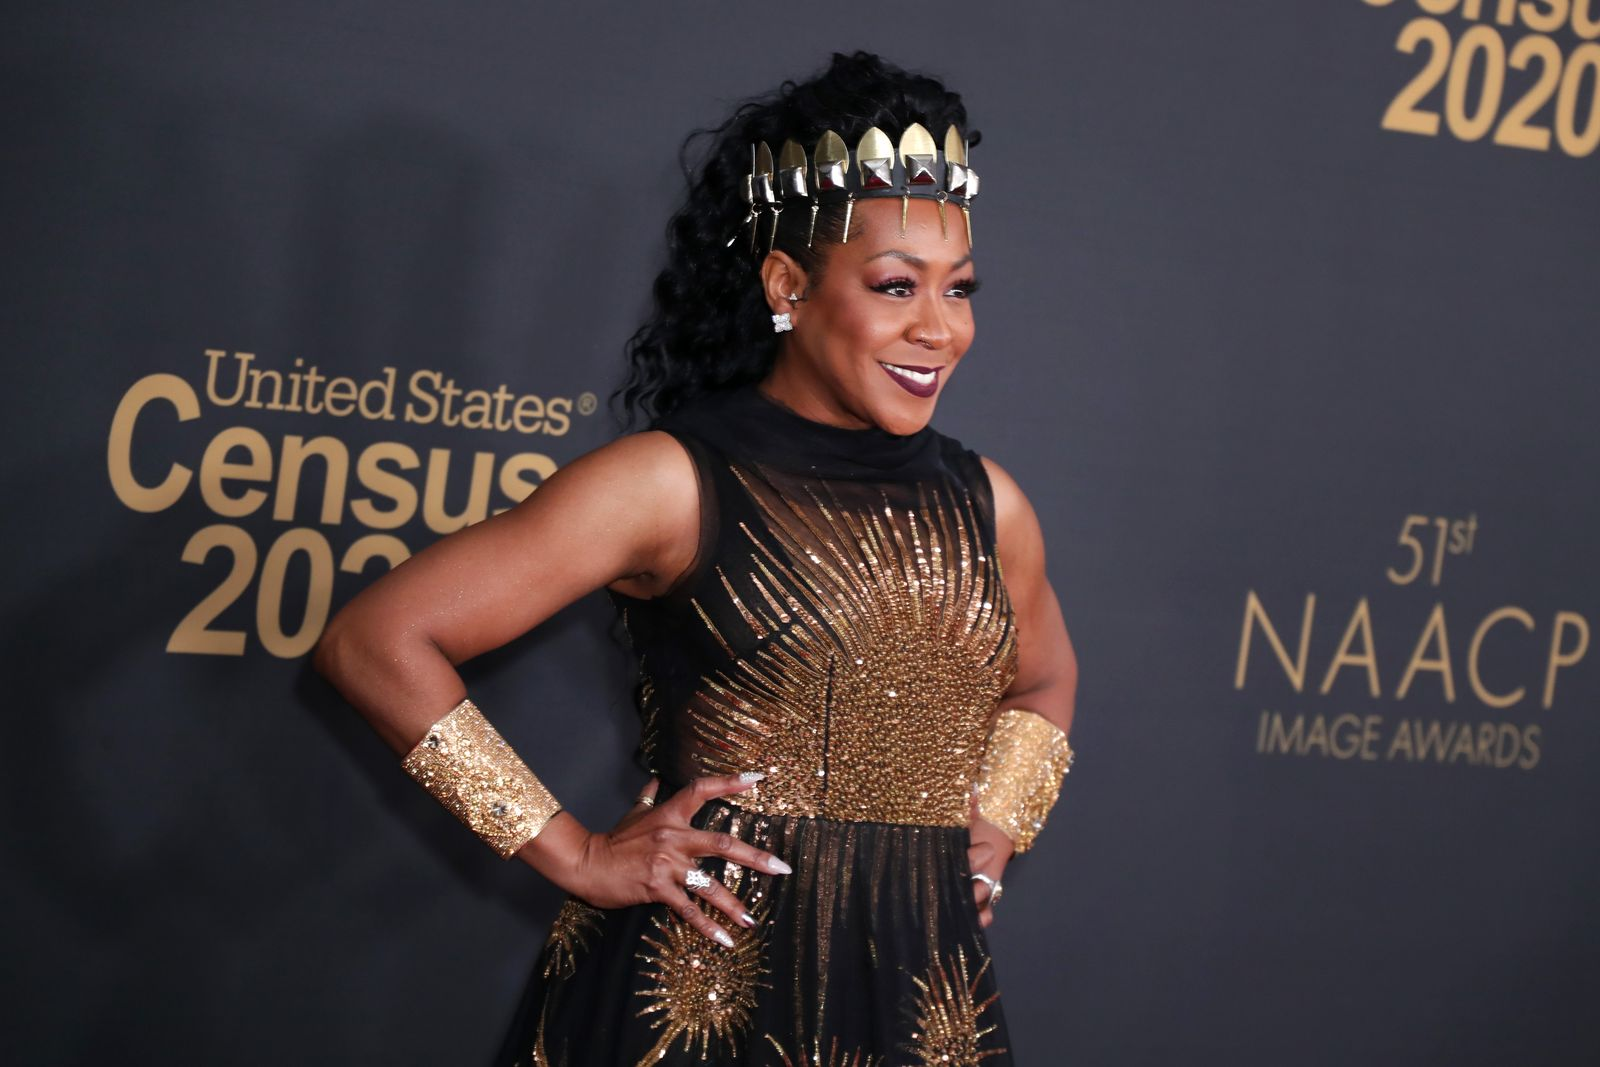 Tichina Arnold at the 51st NAACP Image Awards, 2020 in Pasadena, California | Source: Getty Images